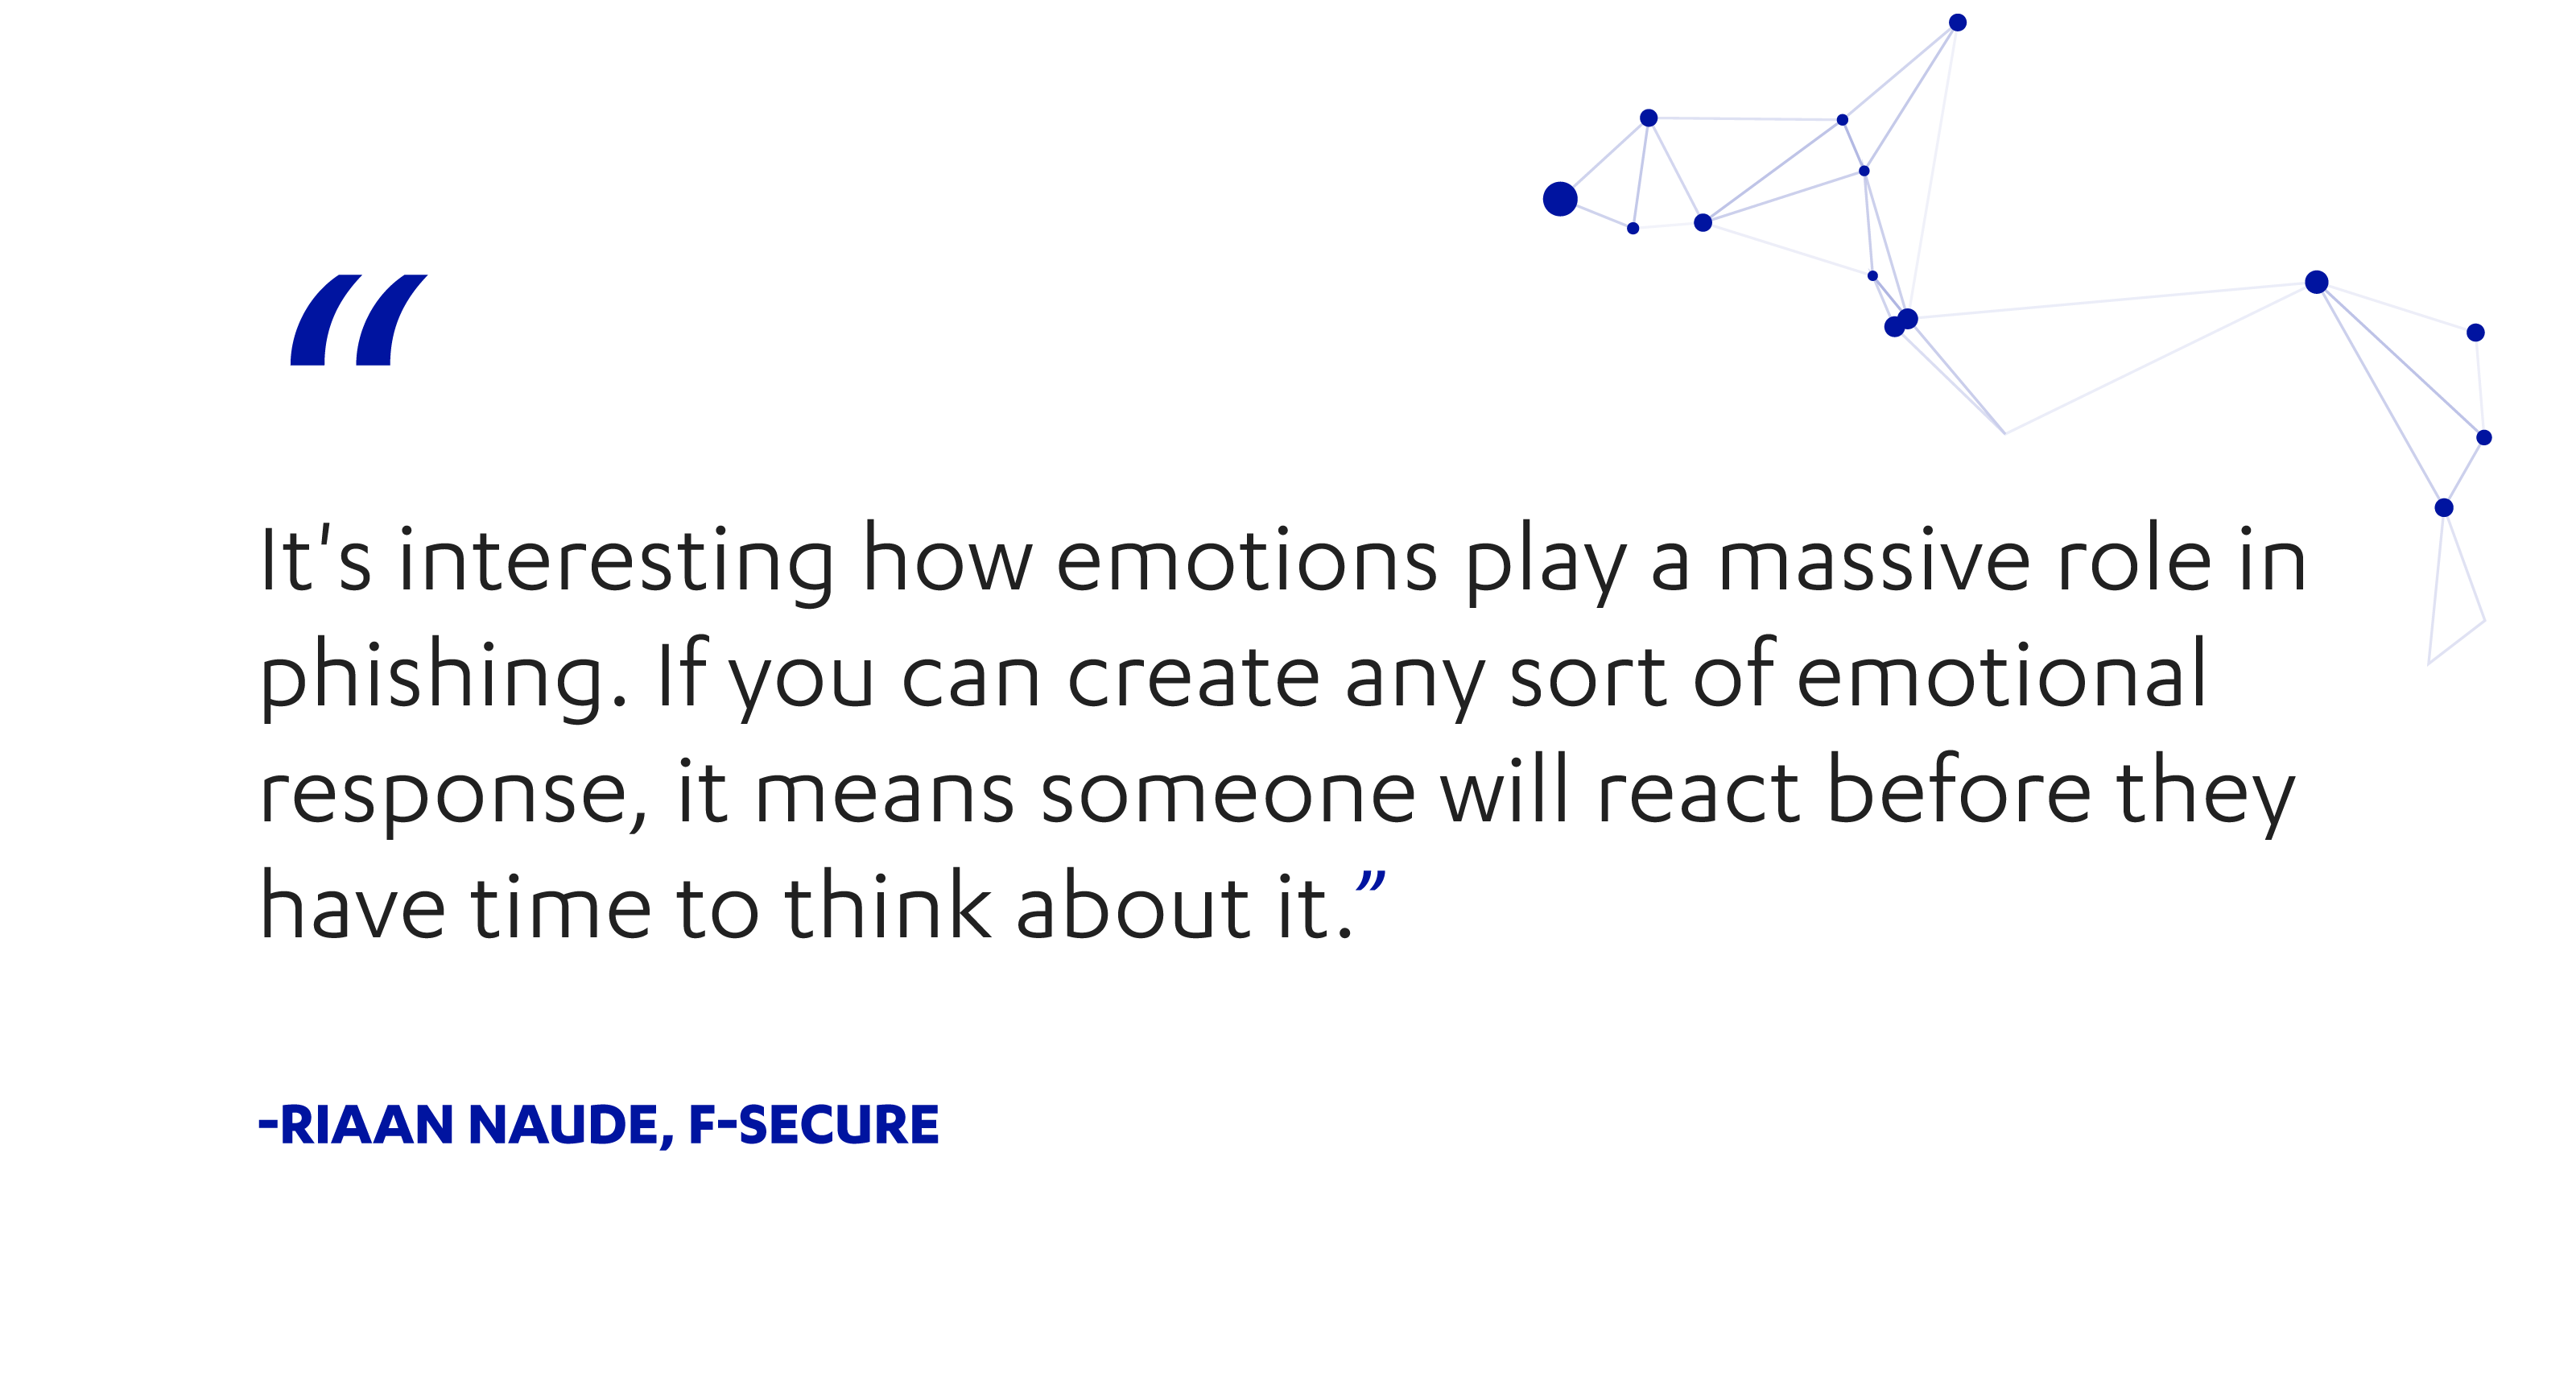 Riaan Naude of F-Secure, on phishing and emotions